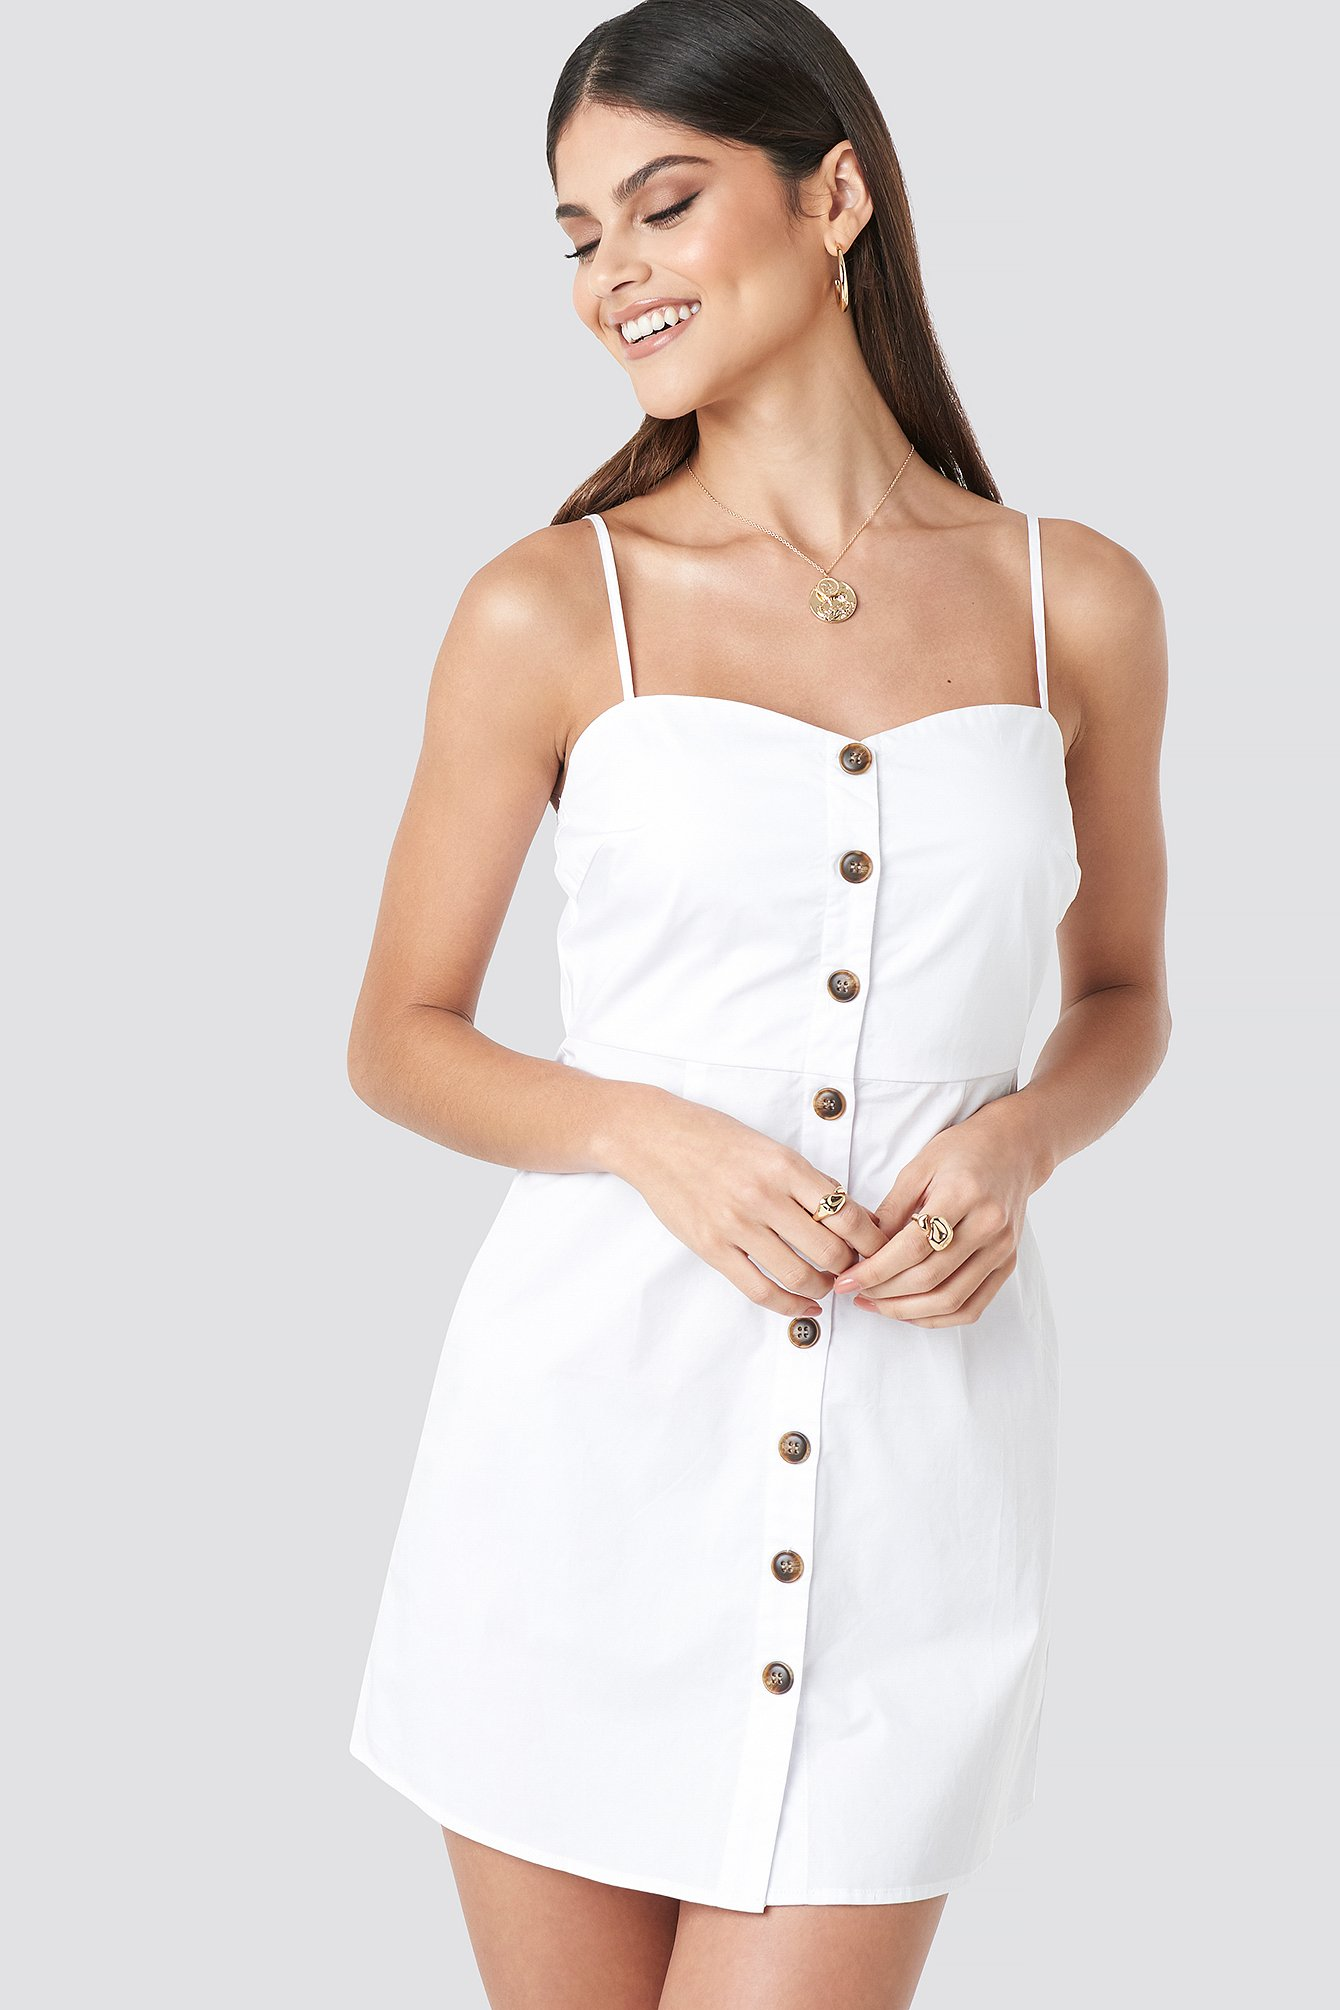 milena karl x na-kd -  Strap Mini Cotton Dress - White